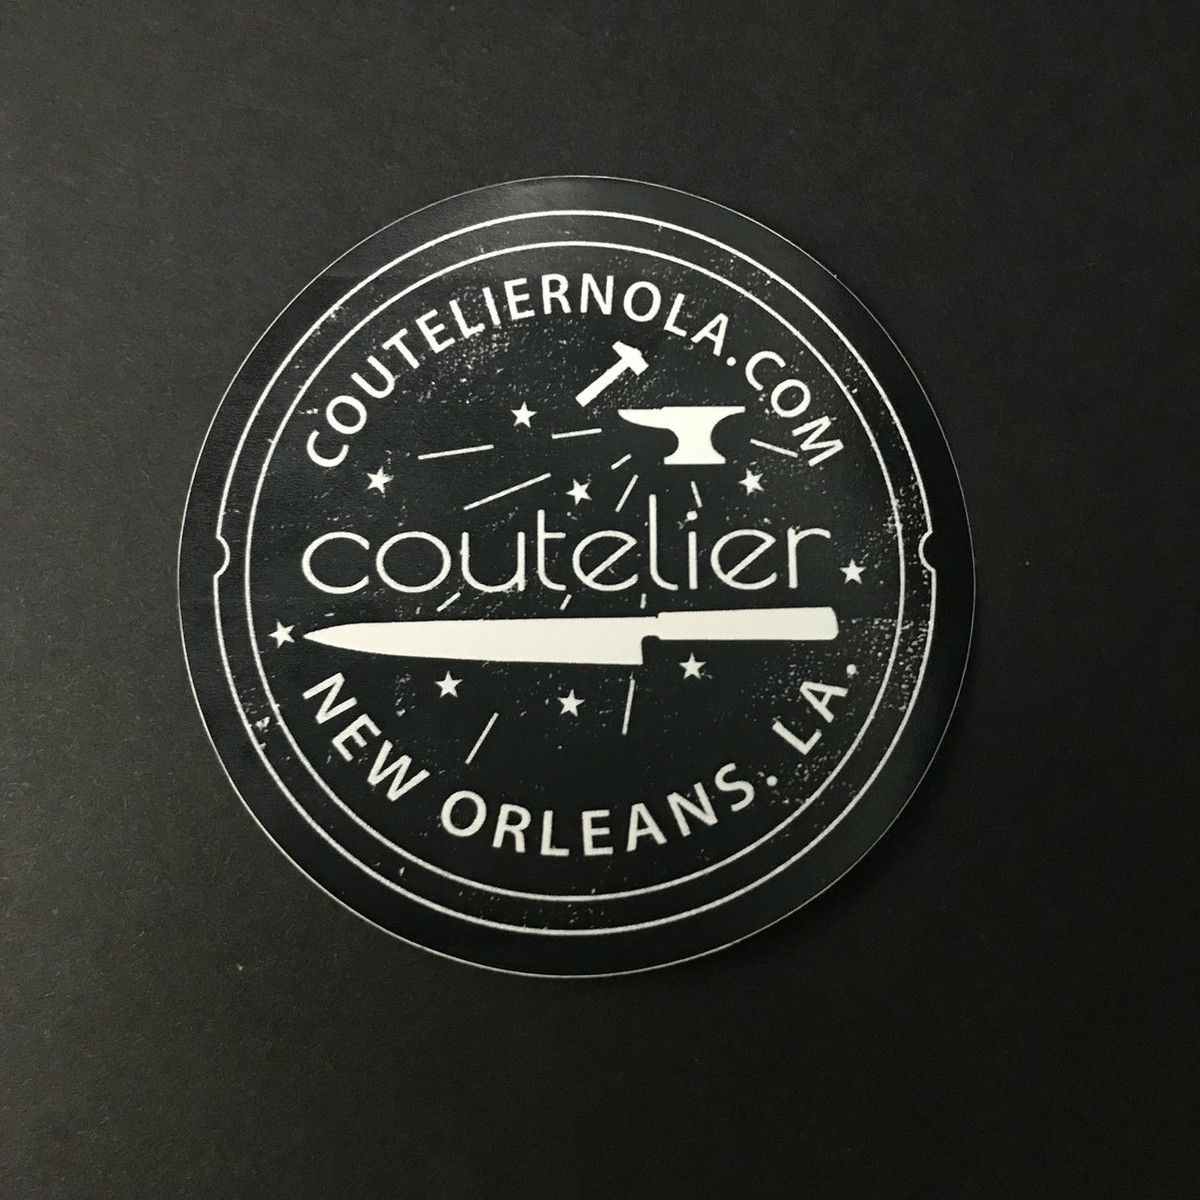 Coutelier Sticker - Watermeter